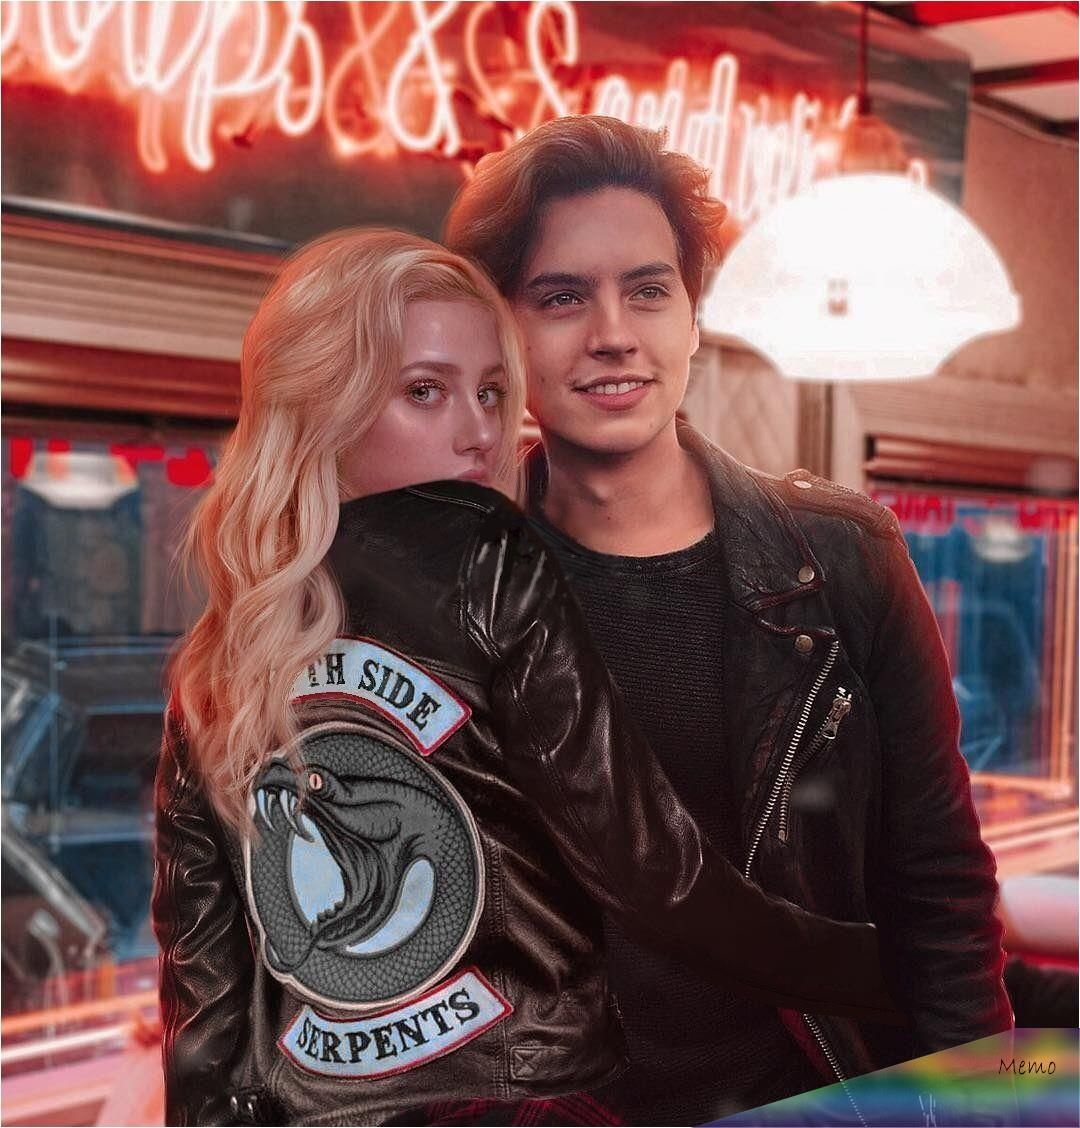 01 Mar 2020 Betty Cooper And Jughead Jones Riverdale Bughead In 2020 Riverdale Halloween Costumes Betty Cooper Riverdale